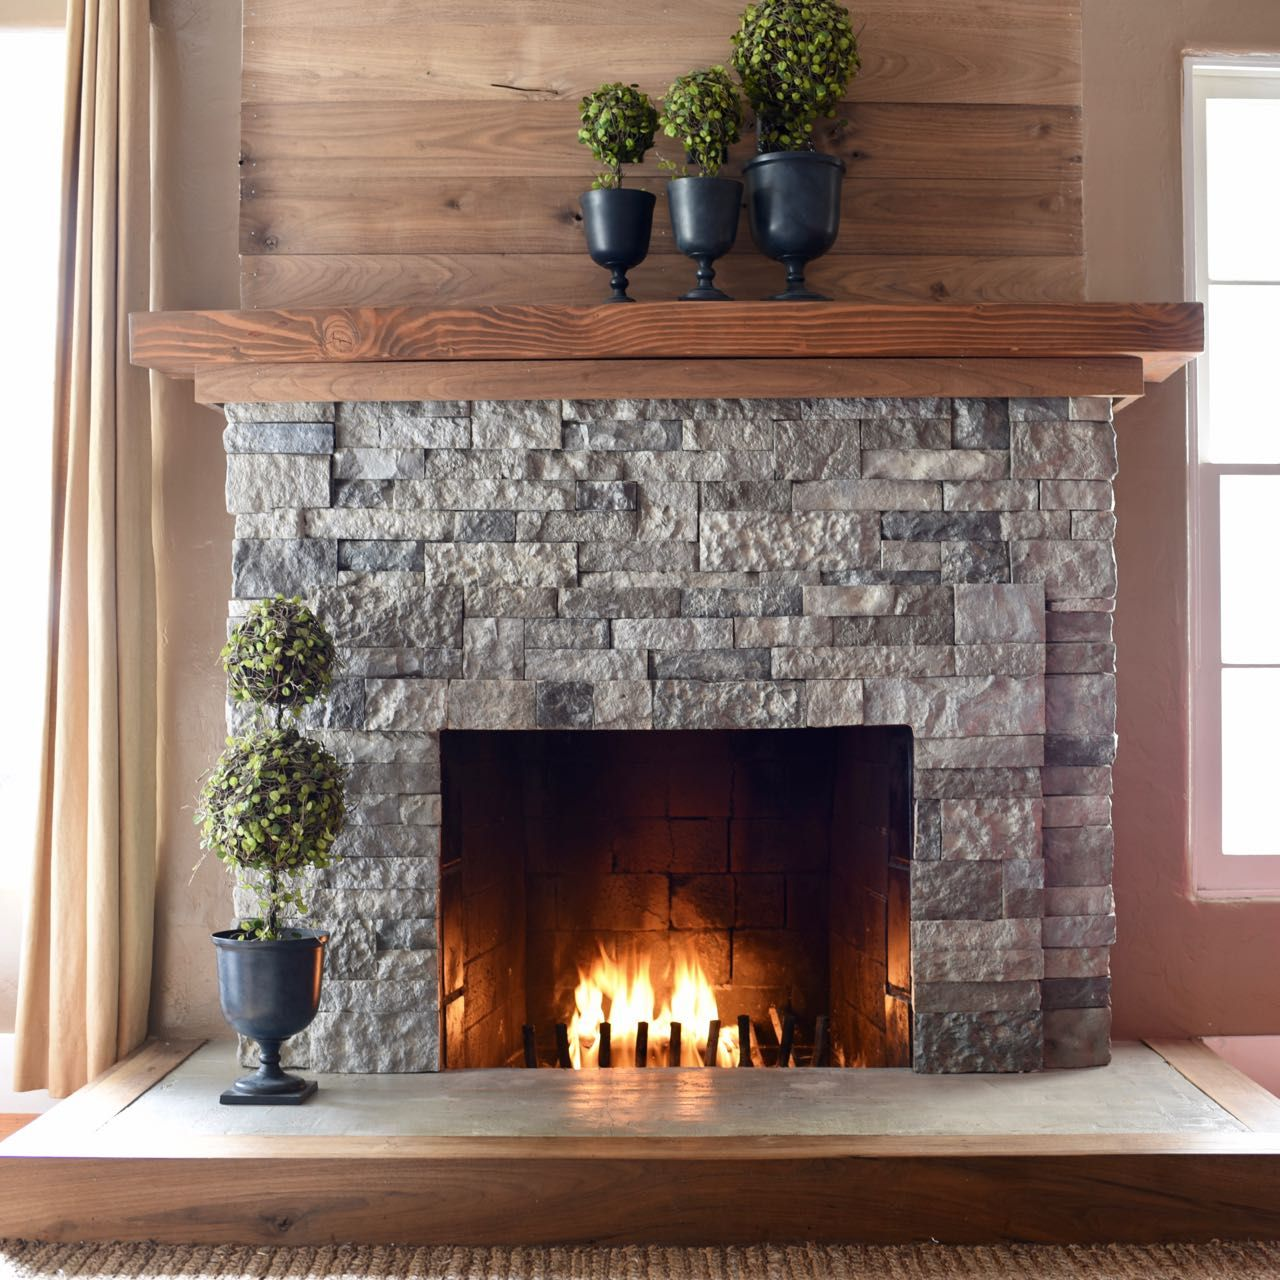 Airstone Fireplace Makeover From Ugly To Incredible